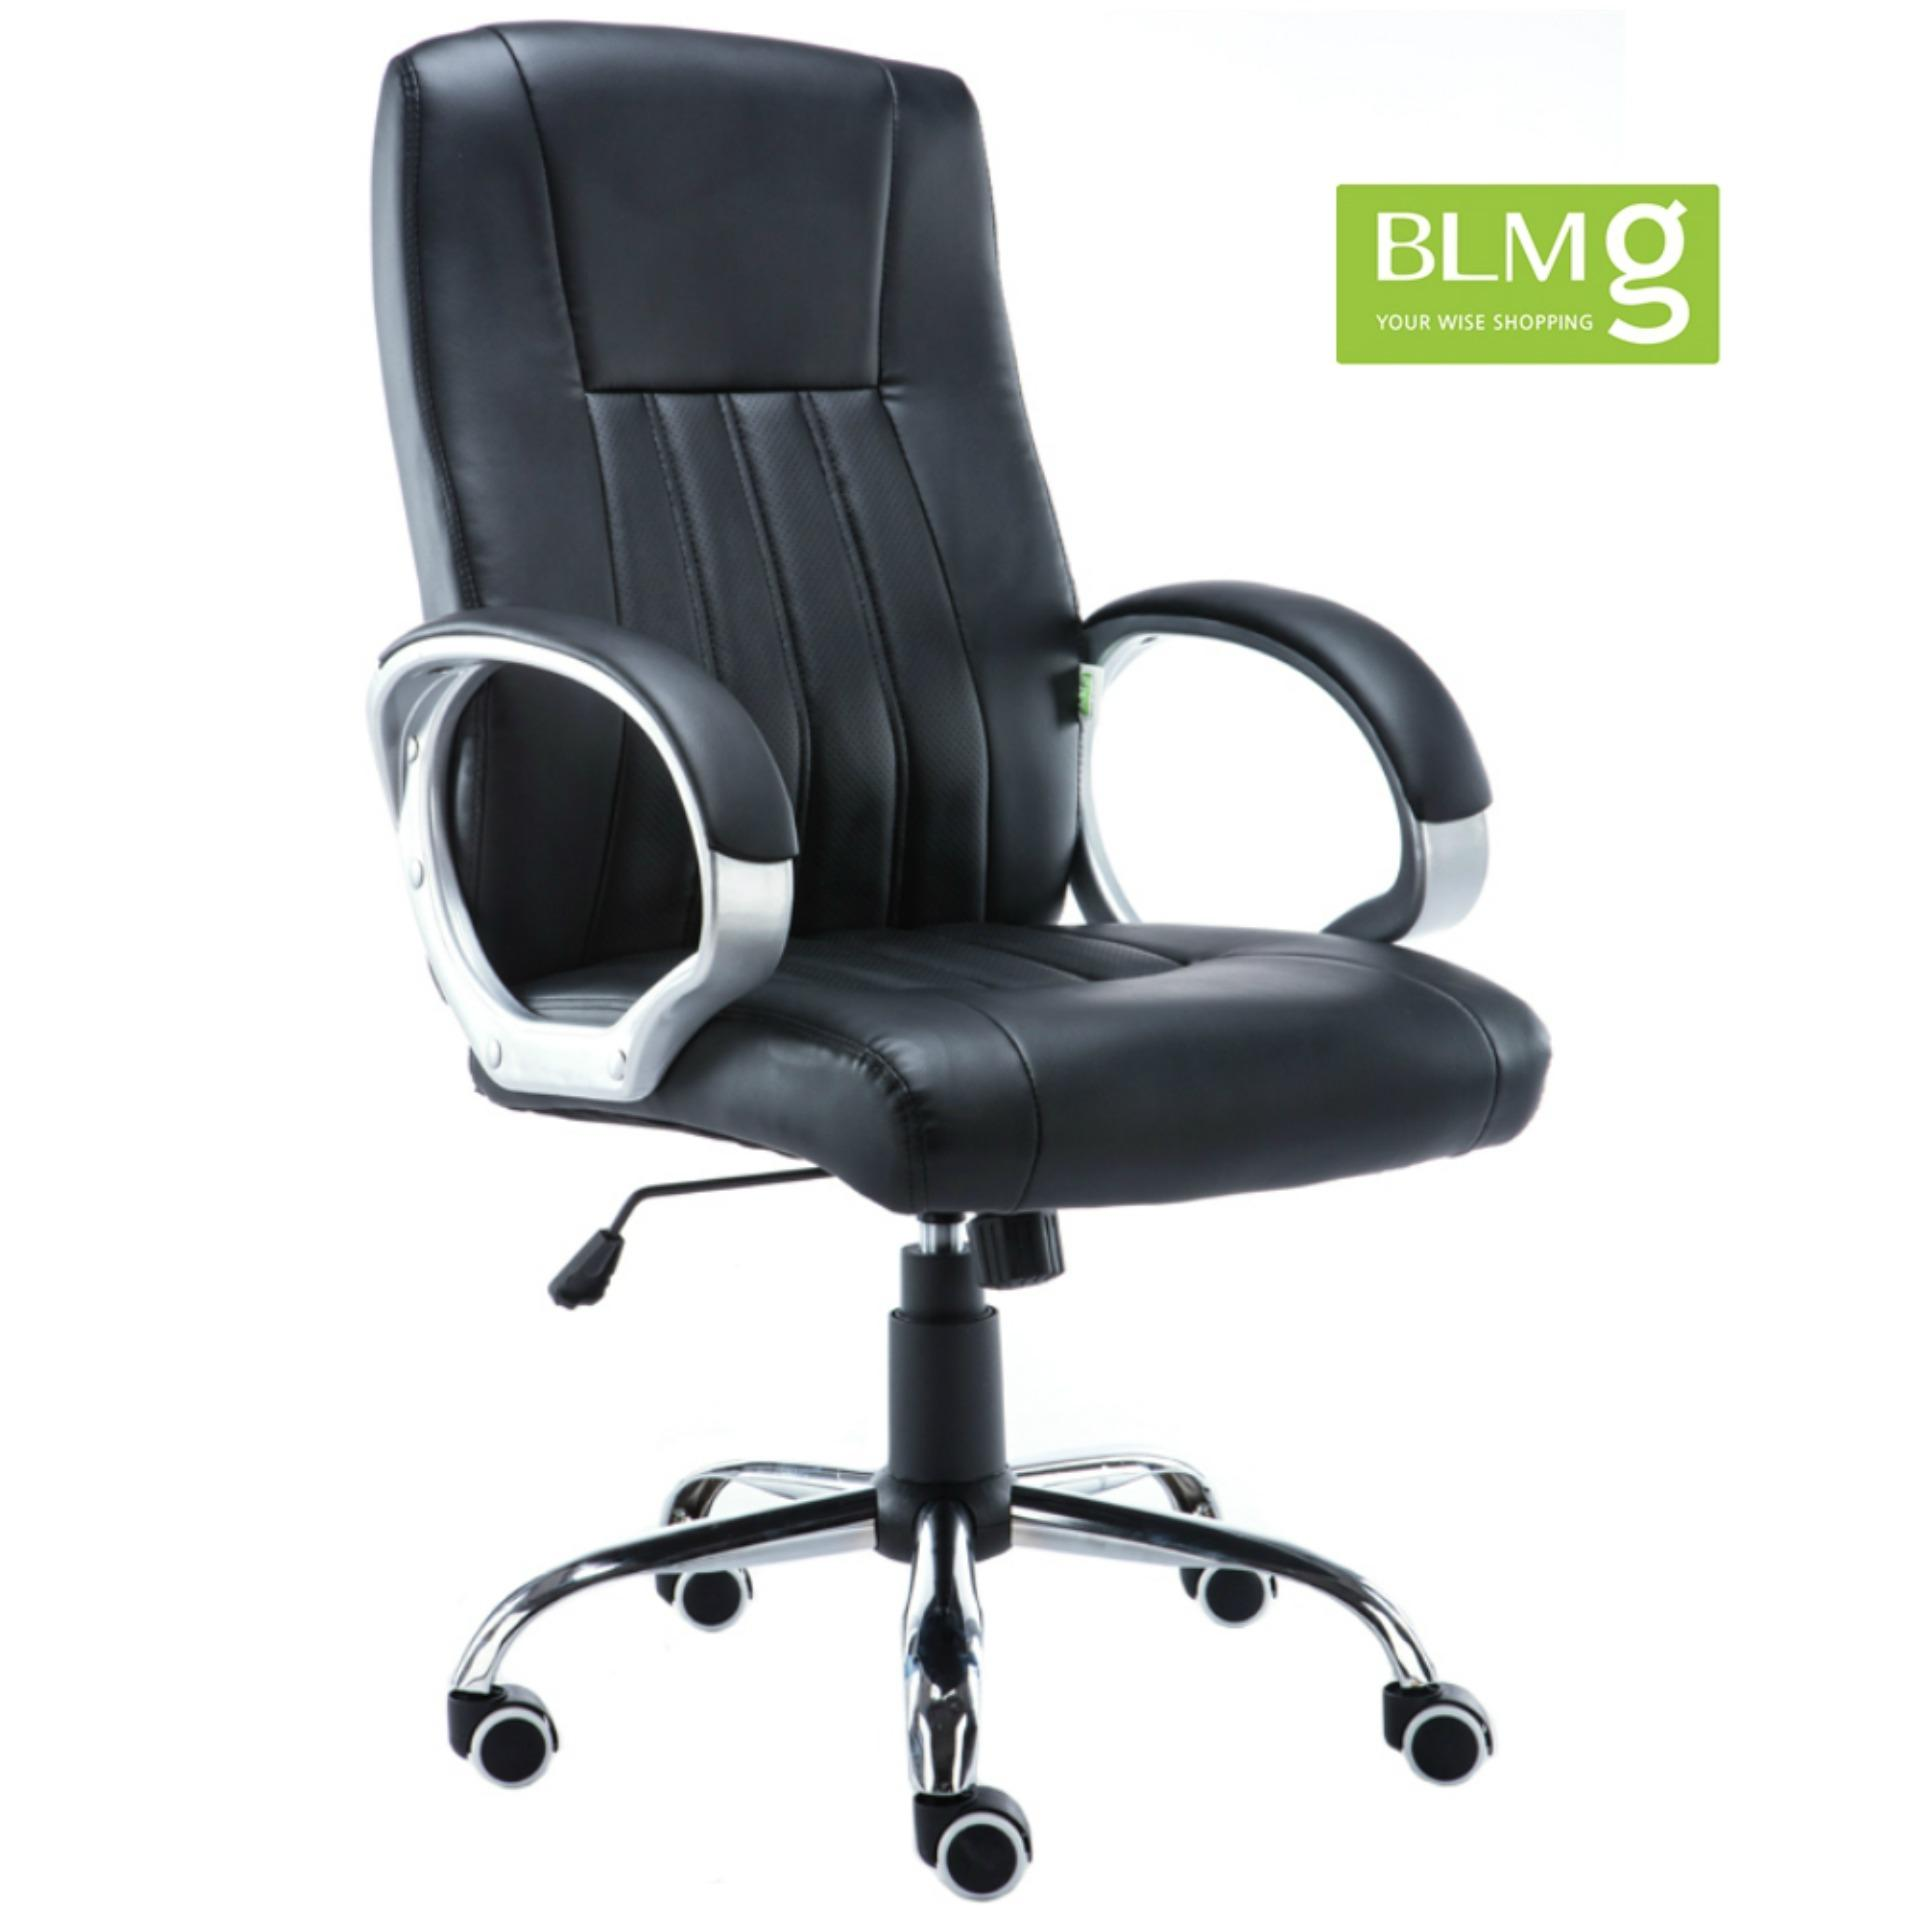 Best Reviews Of Blmg Office Leatherette Chair B100 Black